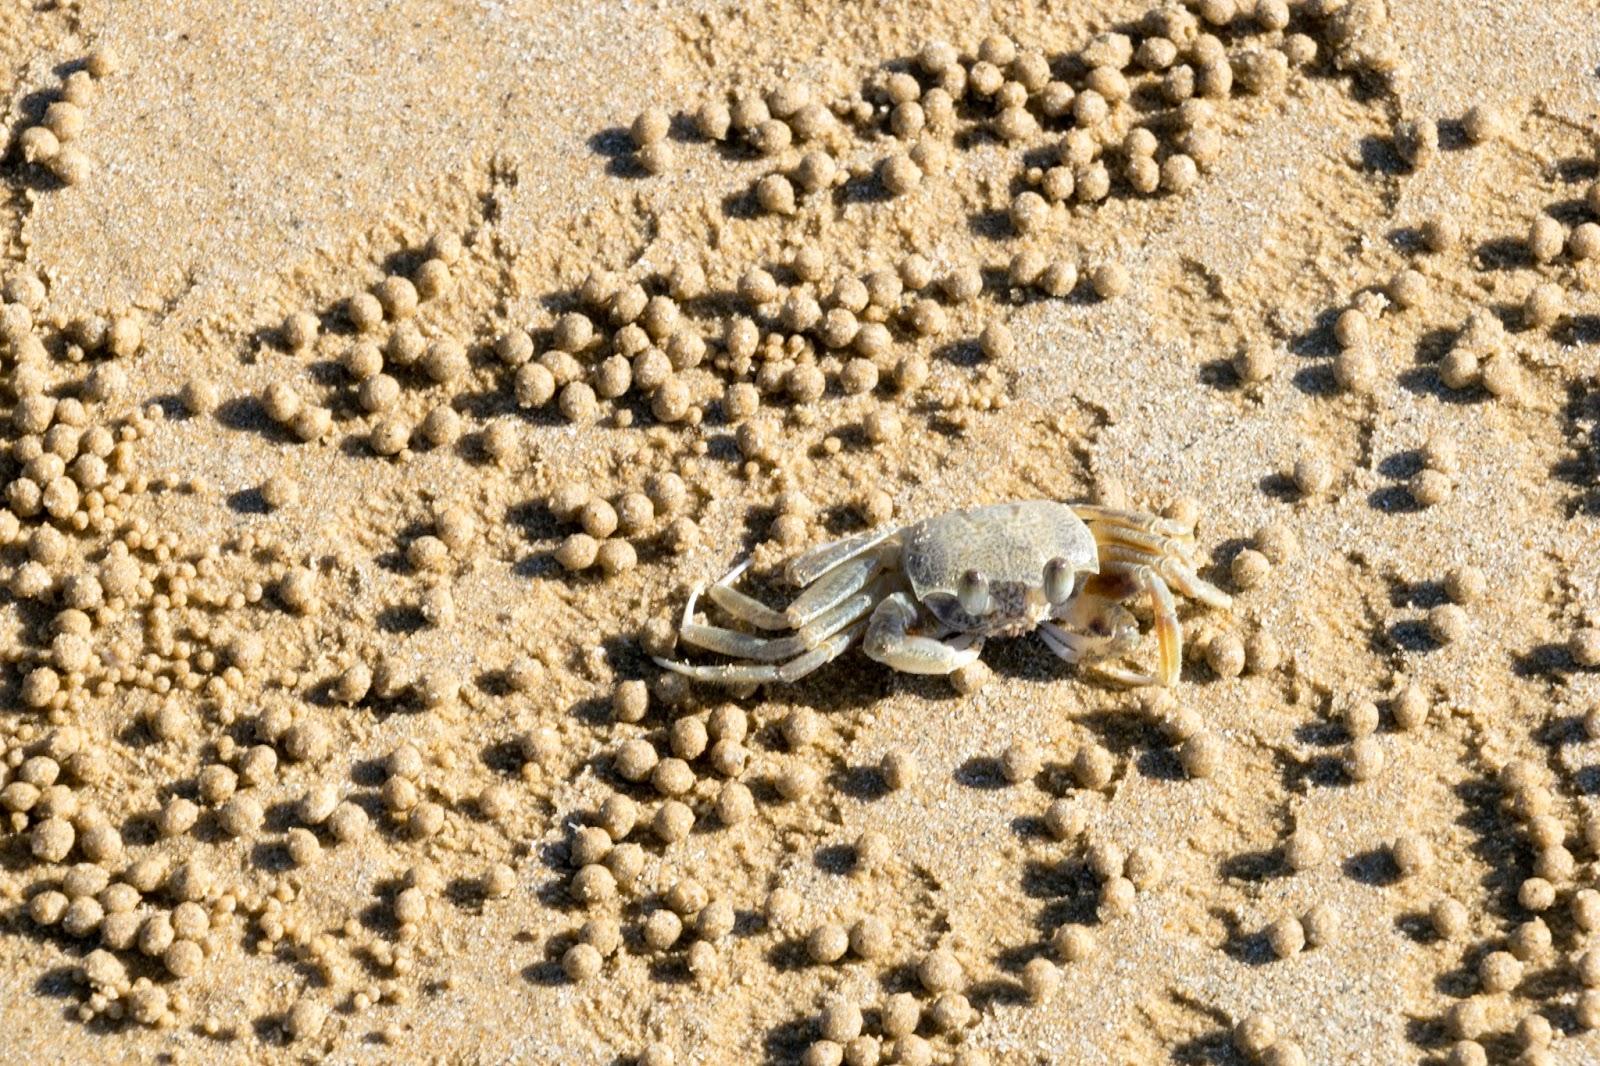 crab at mission beach